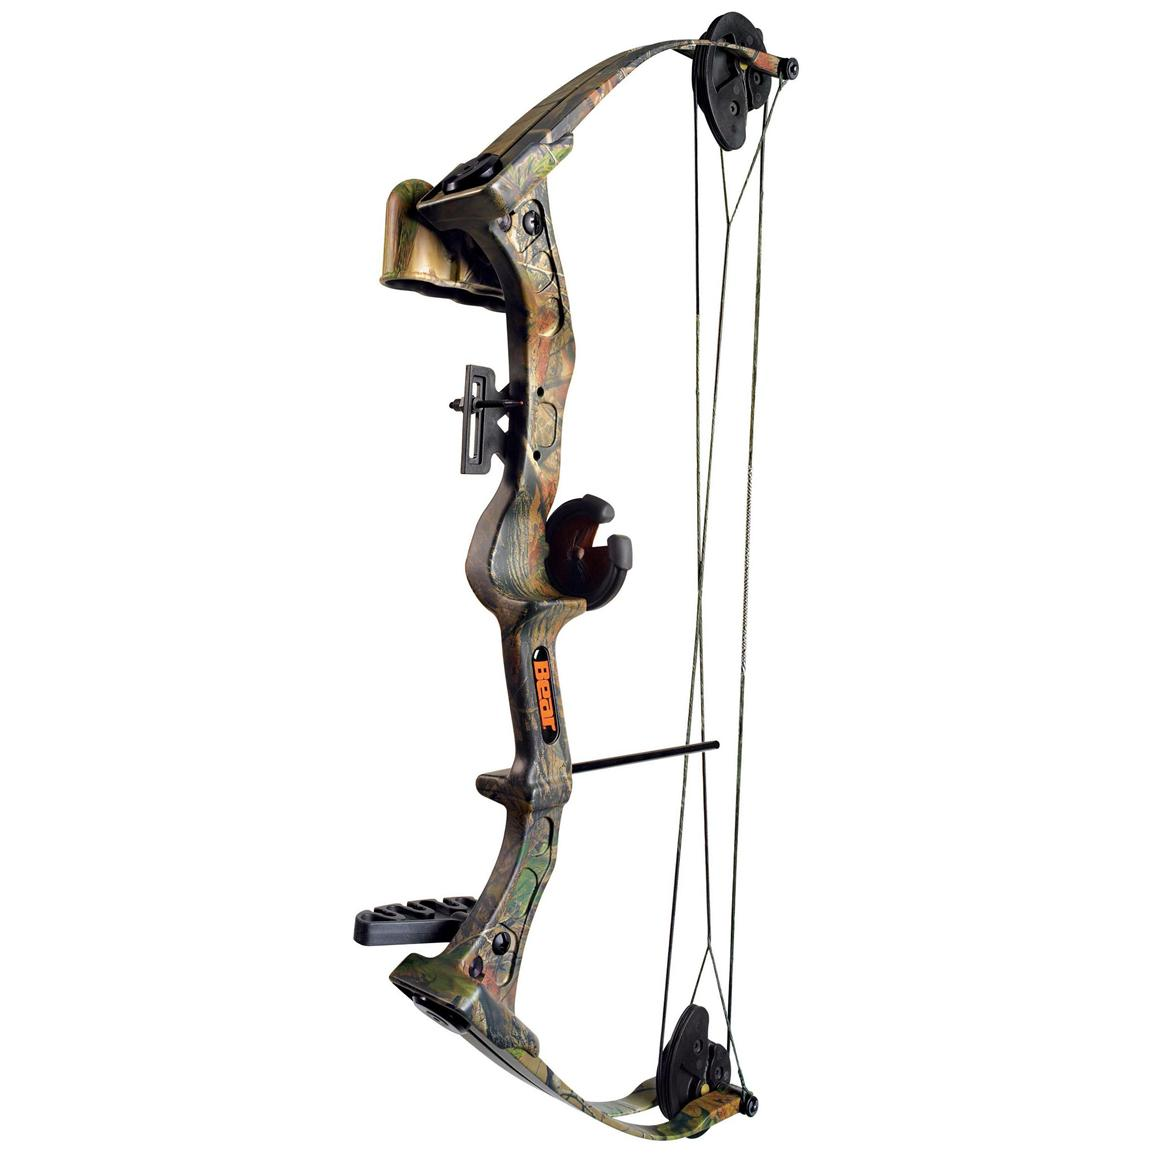 Fred Bear® Warrior III Compound Bow Set with Whisker Biscuit